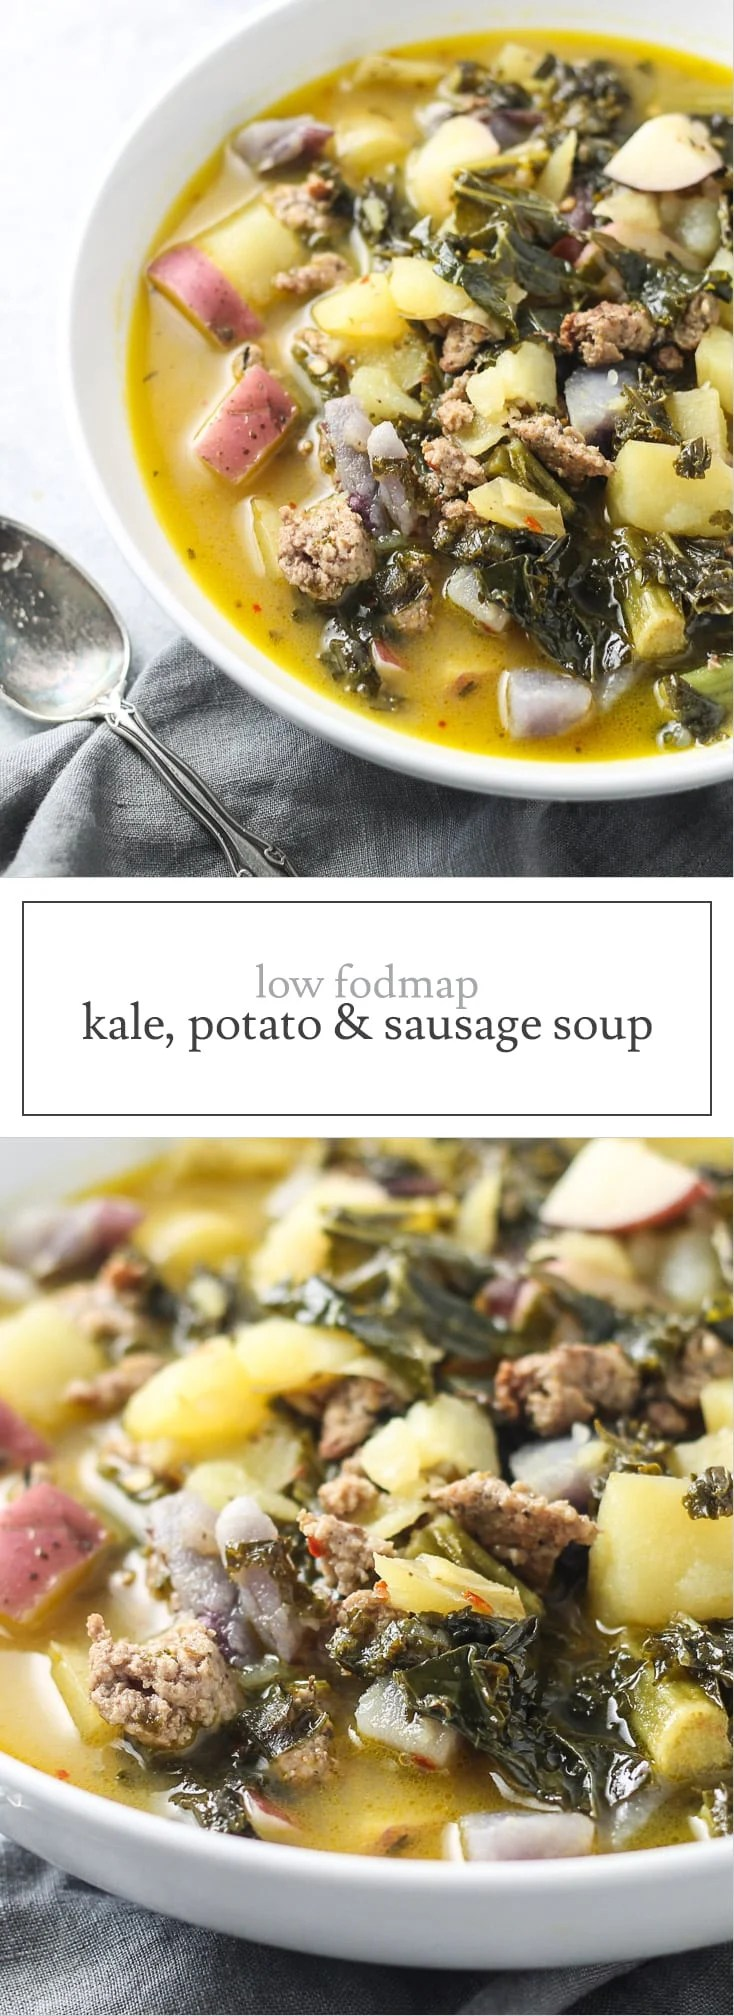 Warm up with a bowl of delicious Low FODMAP Kale, Potato, and Sausage Soup! Not only is this recipe veggie-filled, but it's also gluten and dairy free!